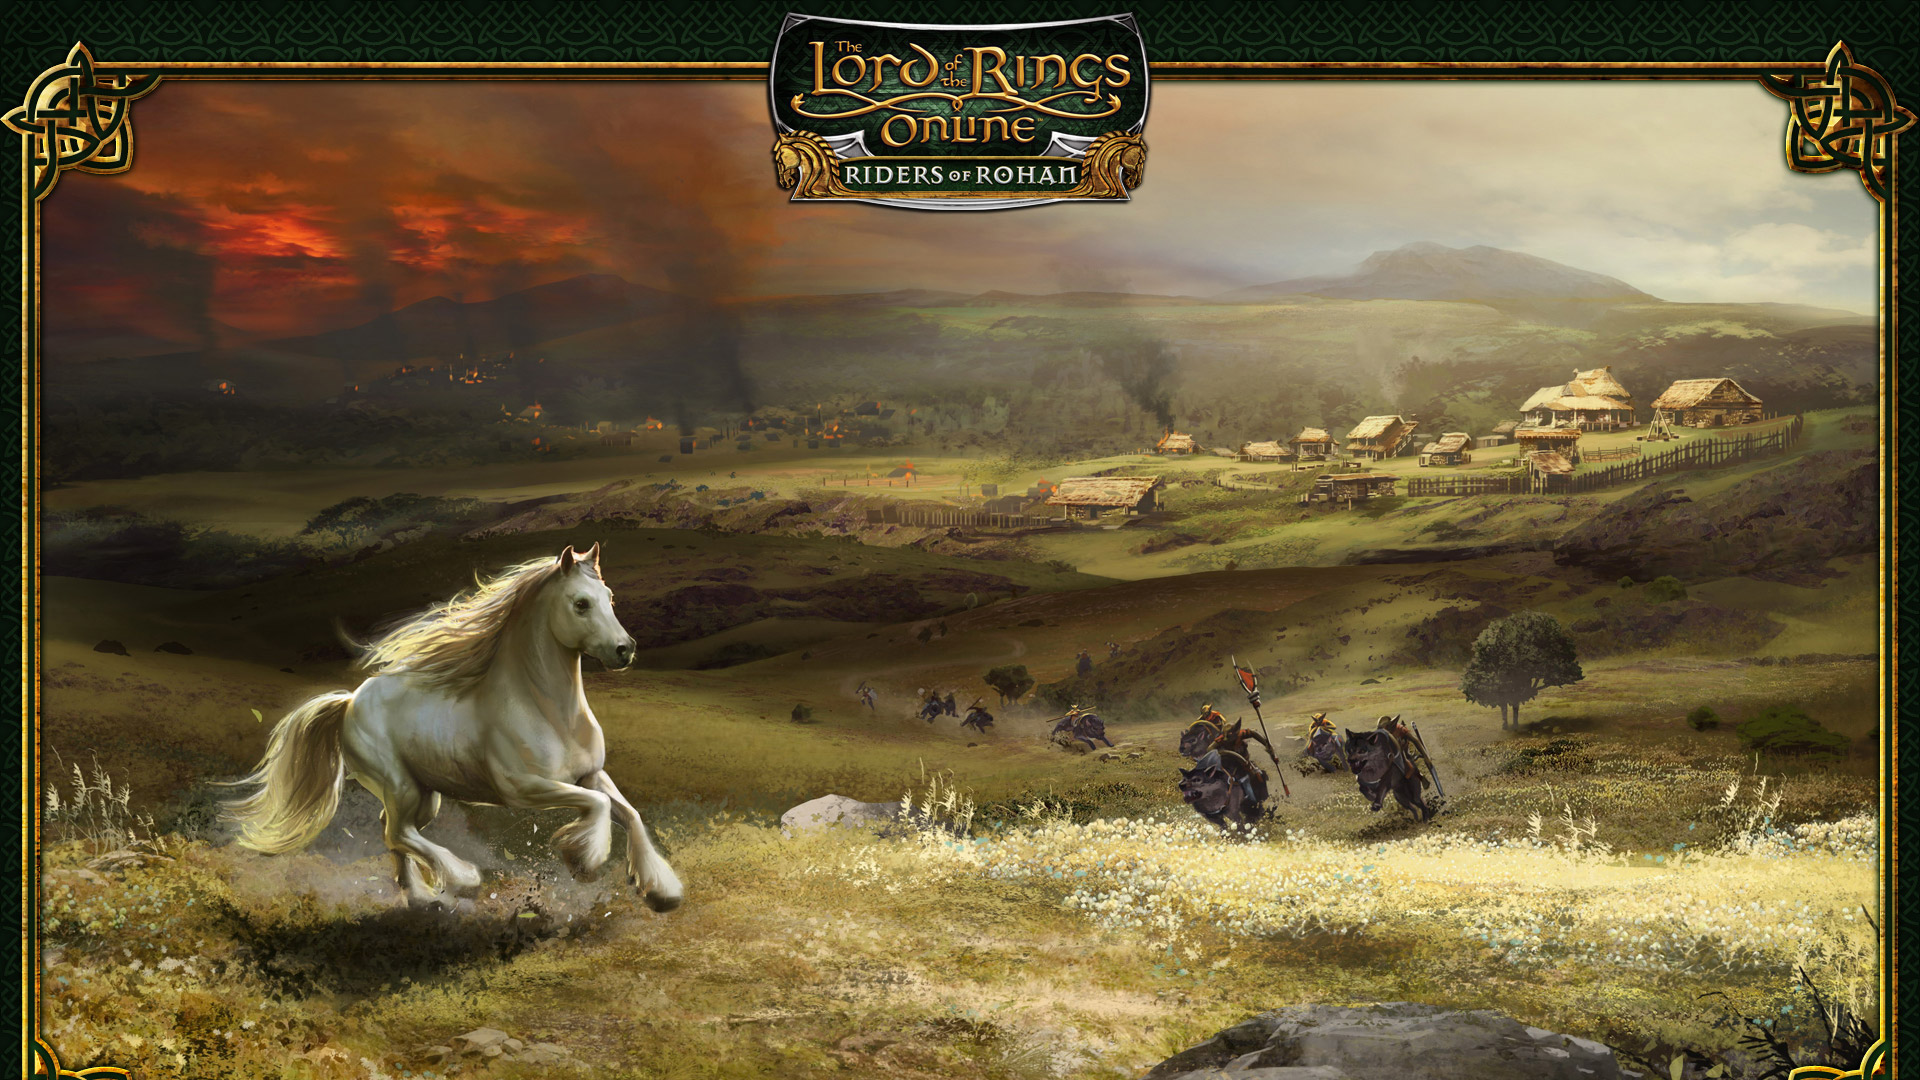 Free The Lord of the Rings Online Wallpaper in 1920x1080